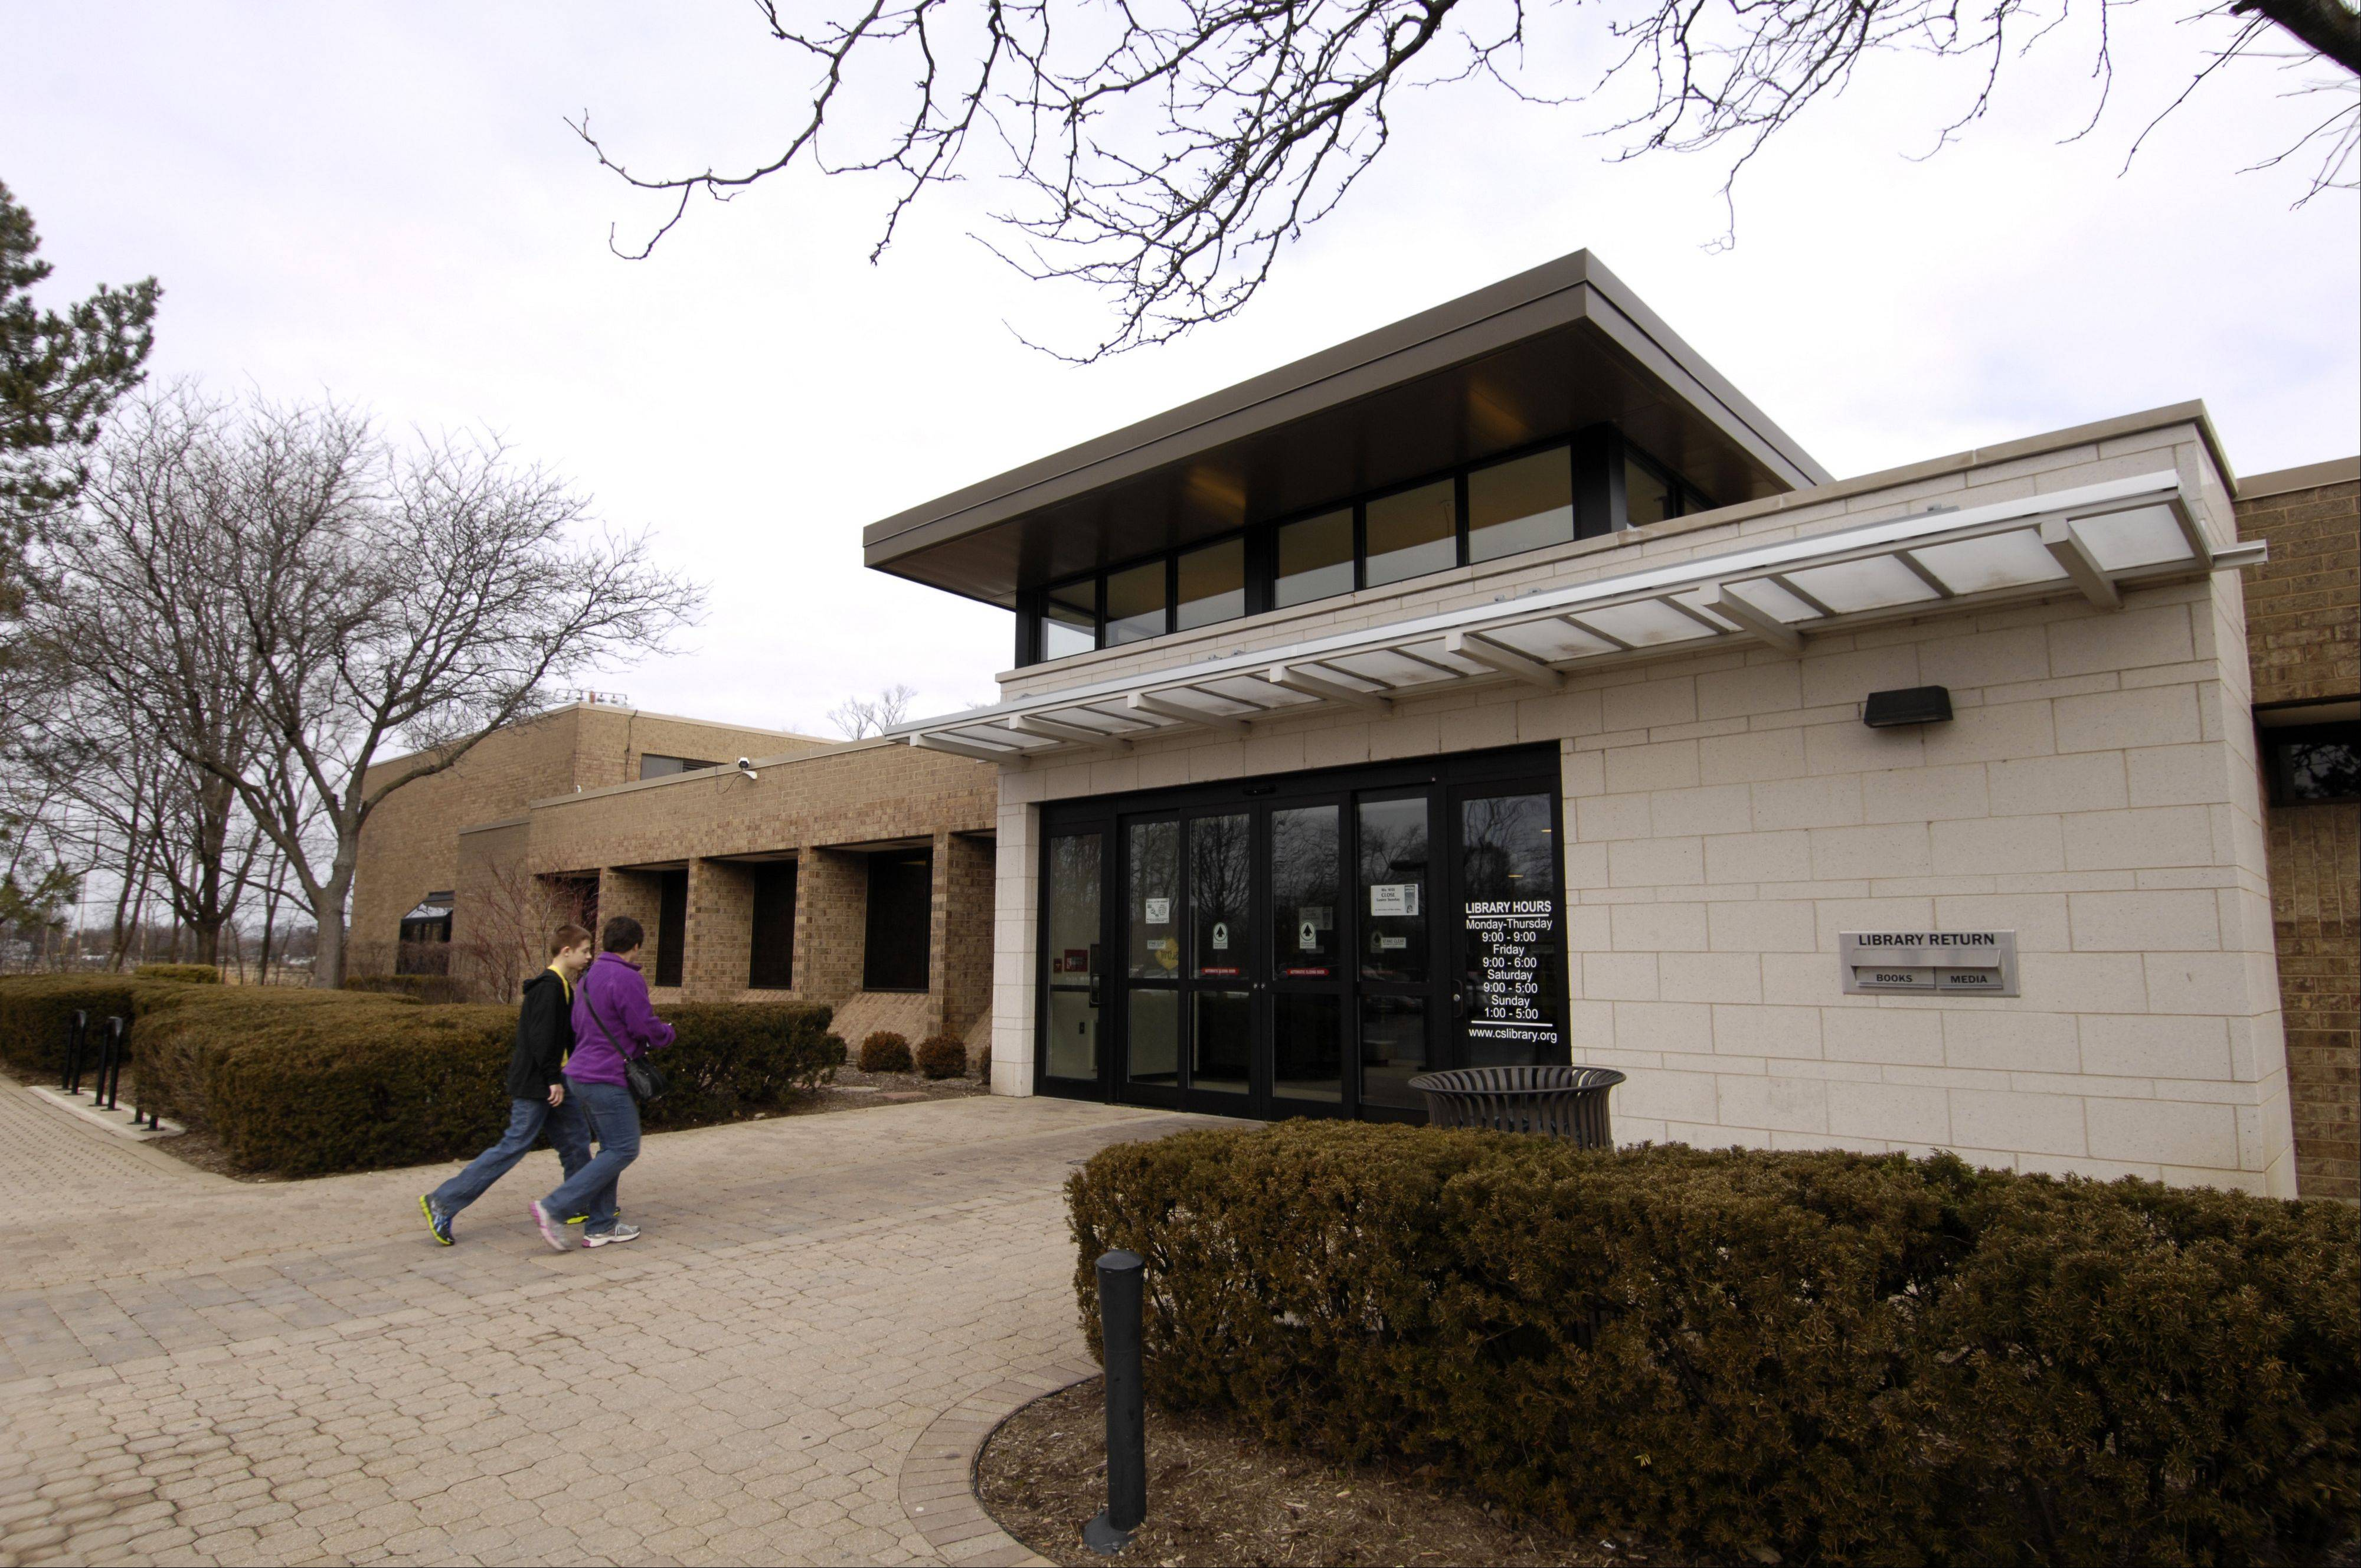 The Carol Stream Public Library recently announced it received a $25,000 donation from Lawrence DuBose.